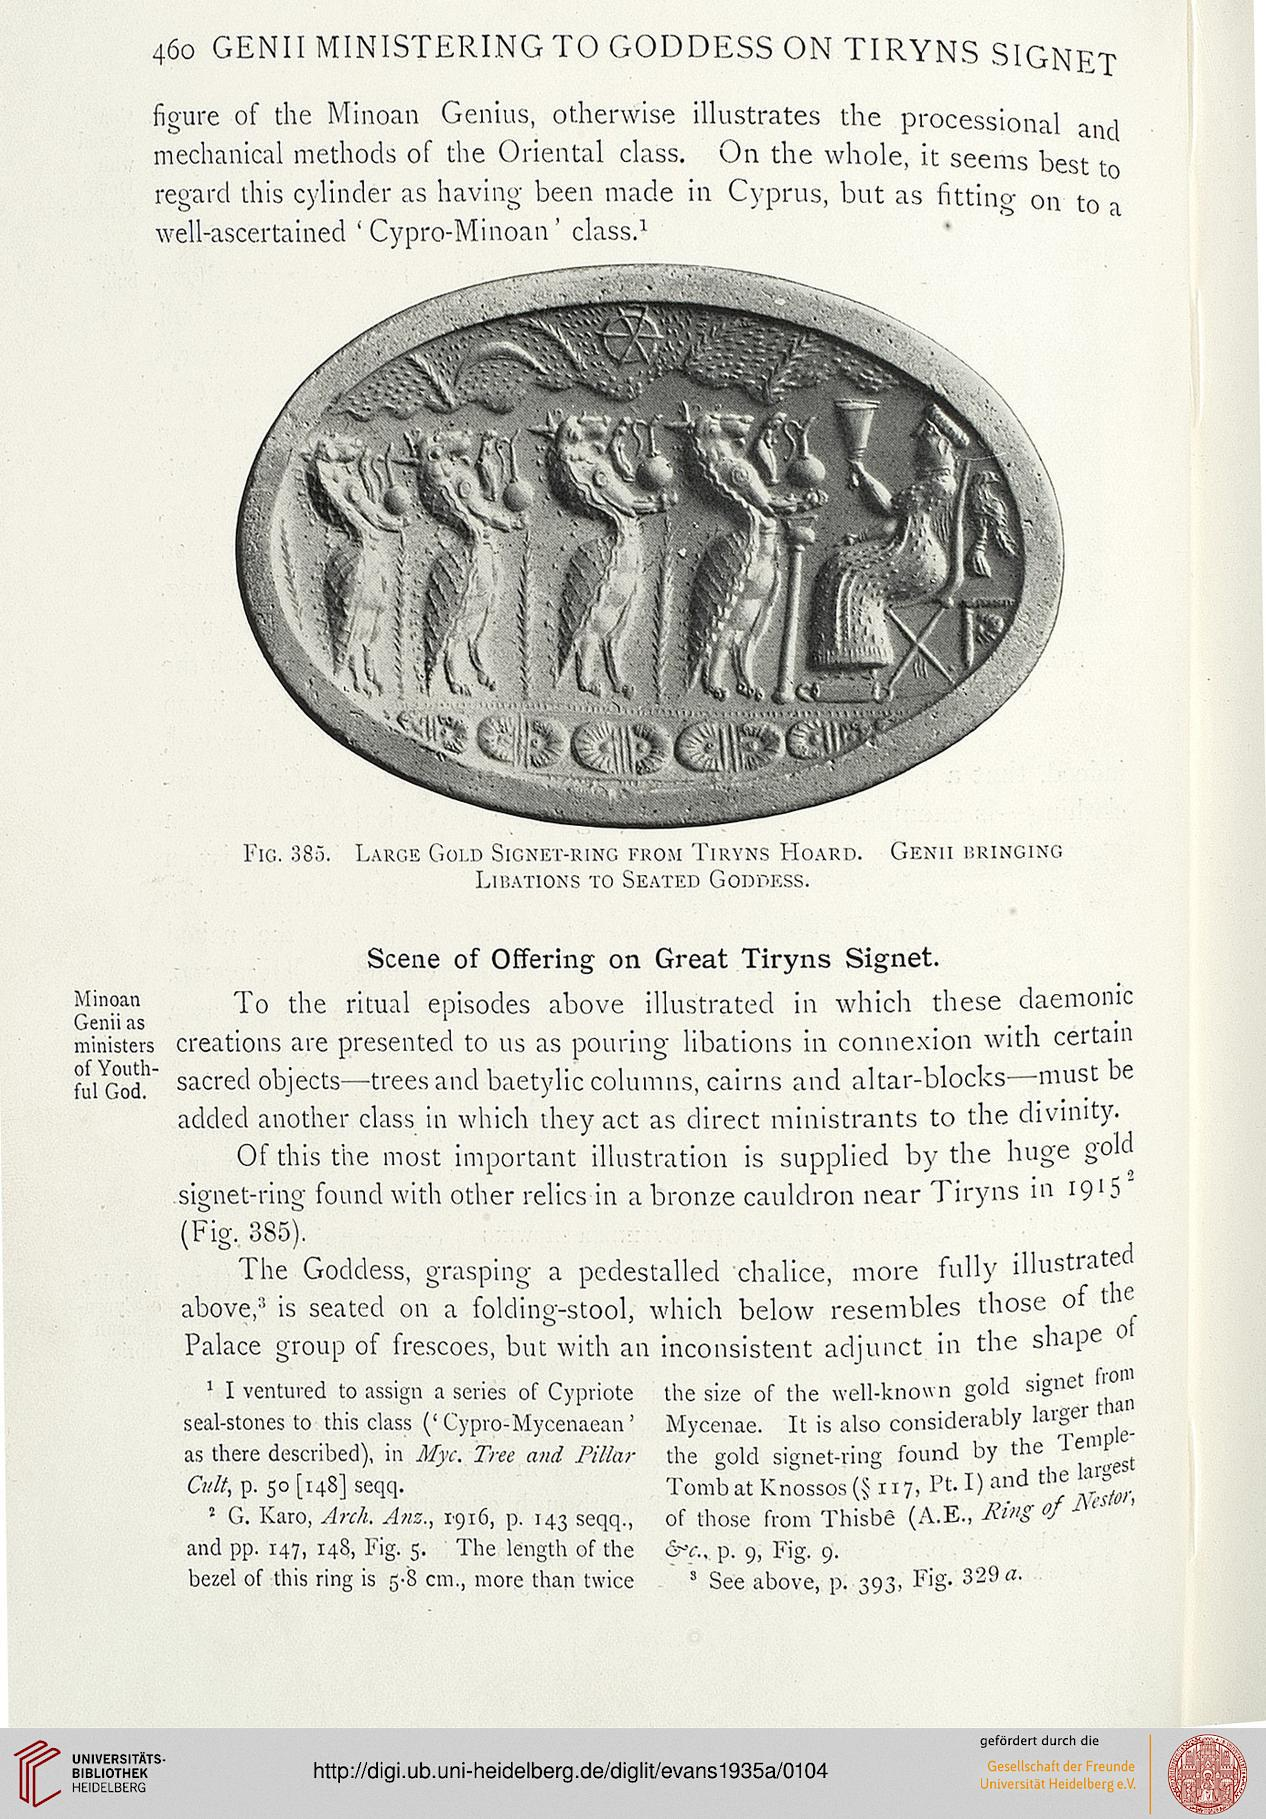 Evans, Arthur J : The Palace of Minos: a comparative account